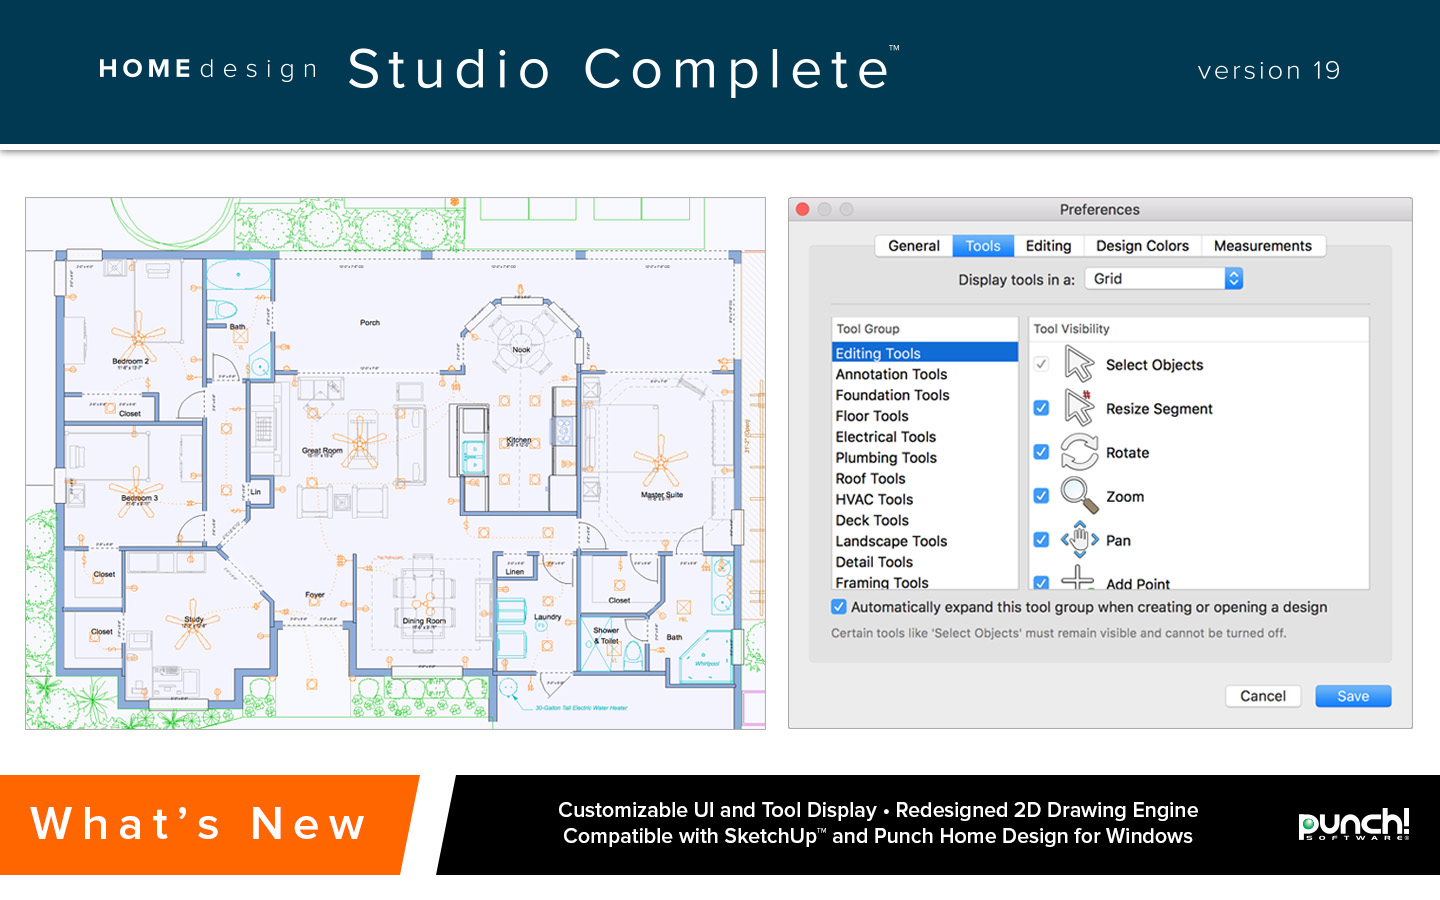 amazoncom punch home design studio complete for mac v19 download software